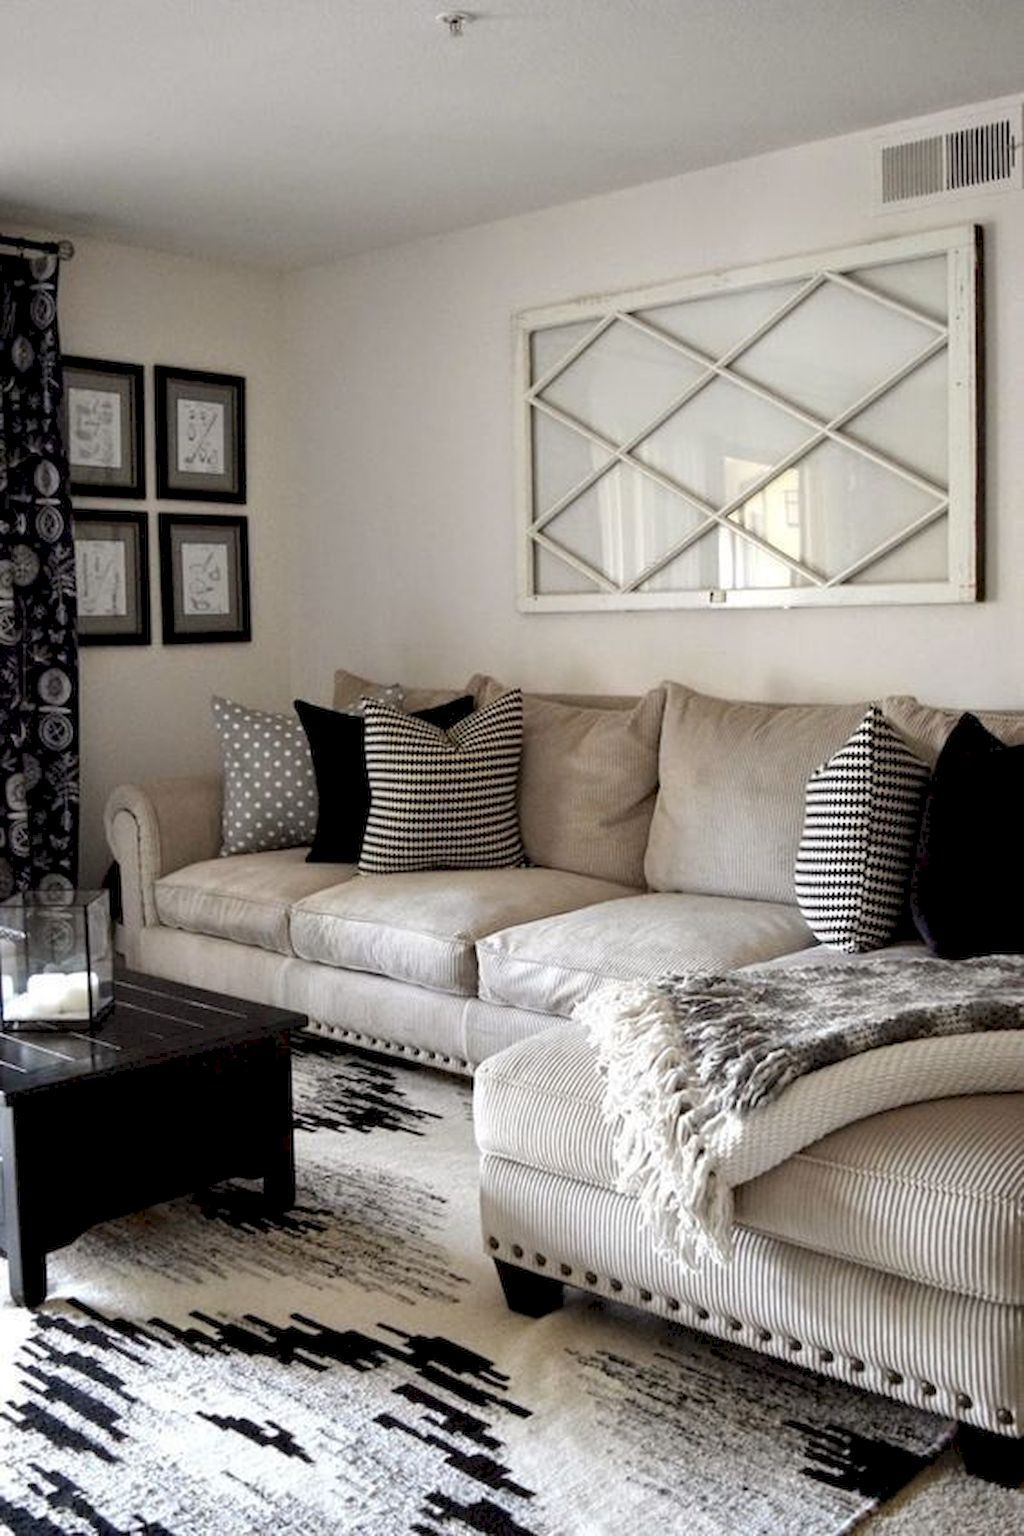 pinterest small living room Pin by BesideRoom on Living Room Ideas | Pinterest | Small living rooms, Small living and Living